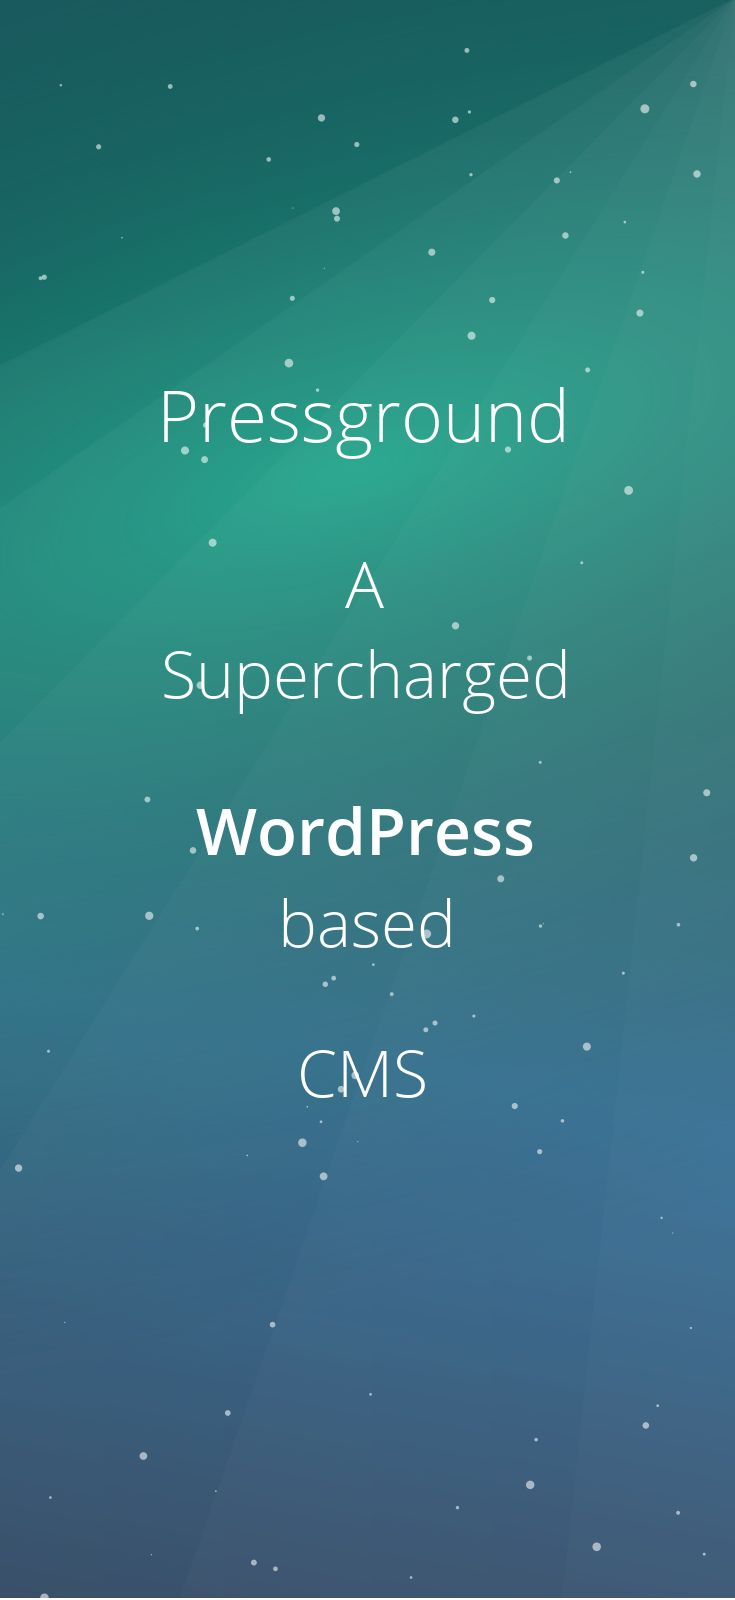 Trying to find the perfect way to build your #website? Meet #Pressground, a Supercharged #WordPress based #CMS : http://pressground.com/